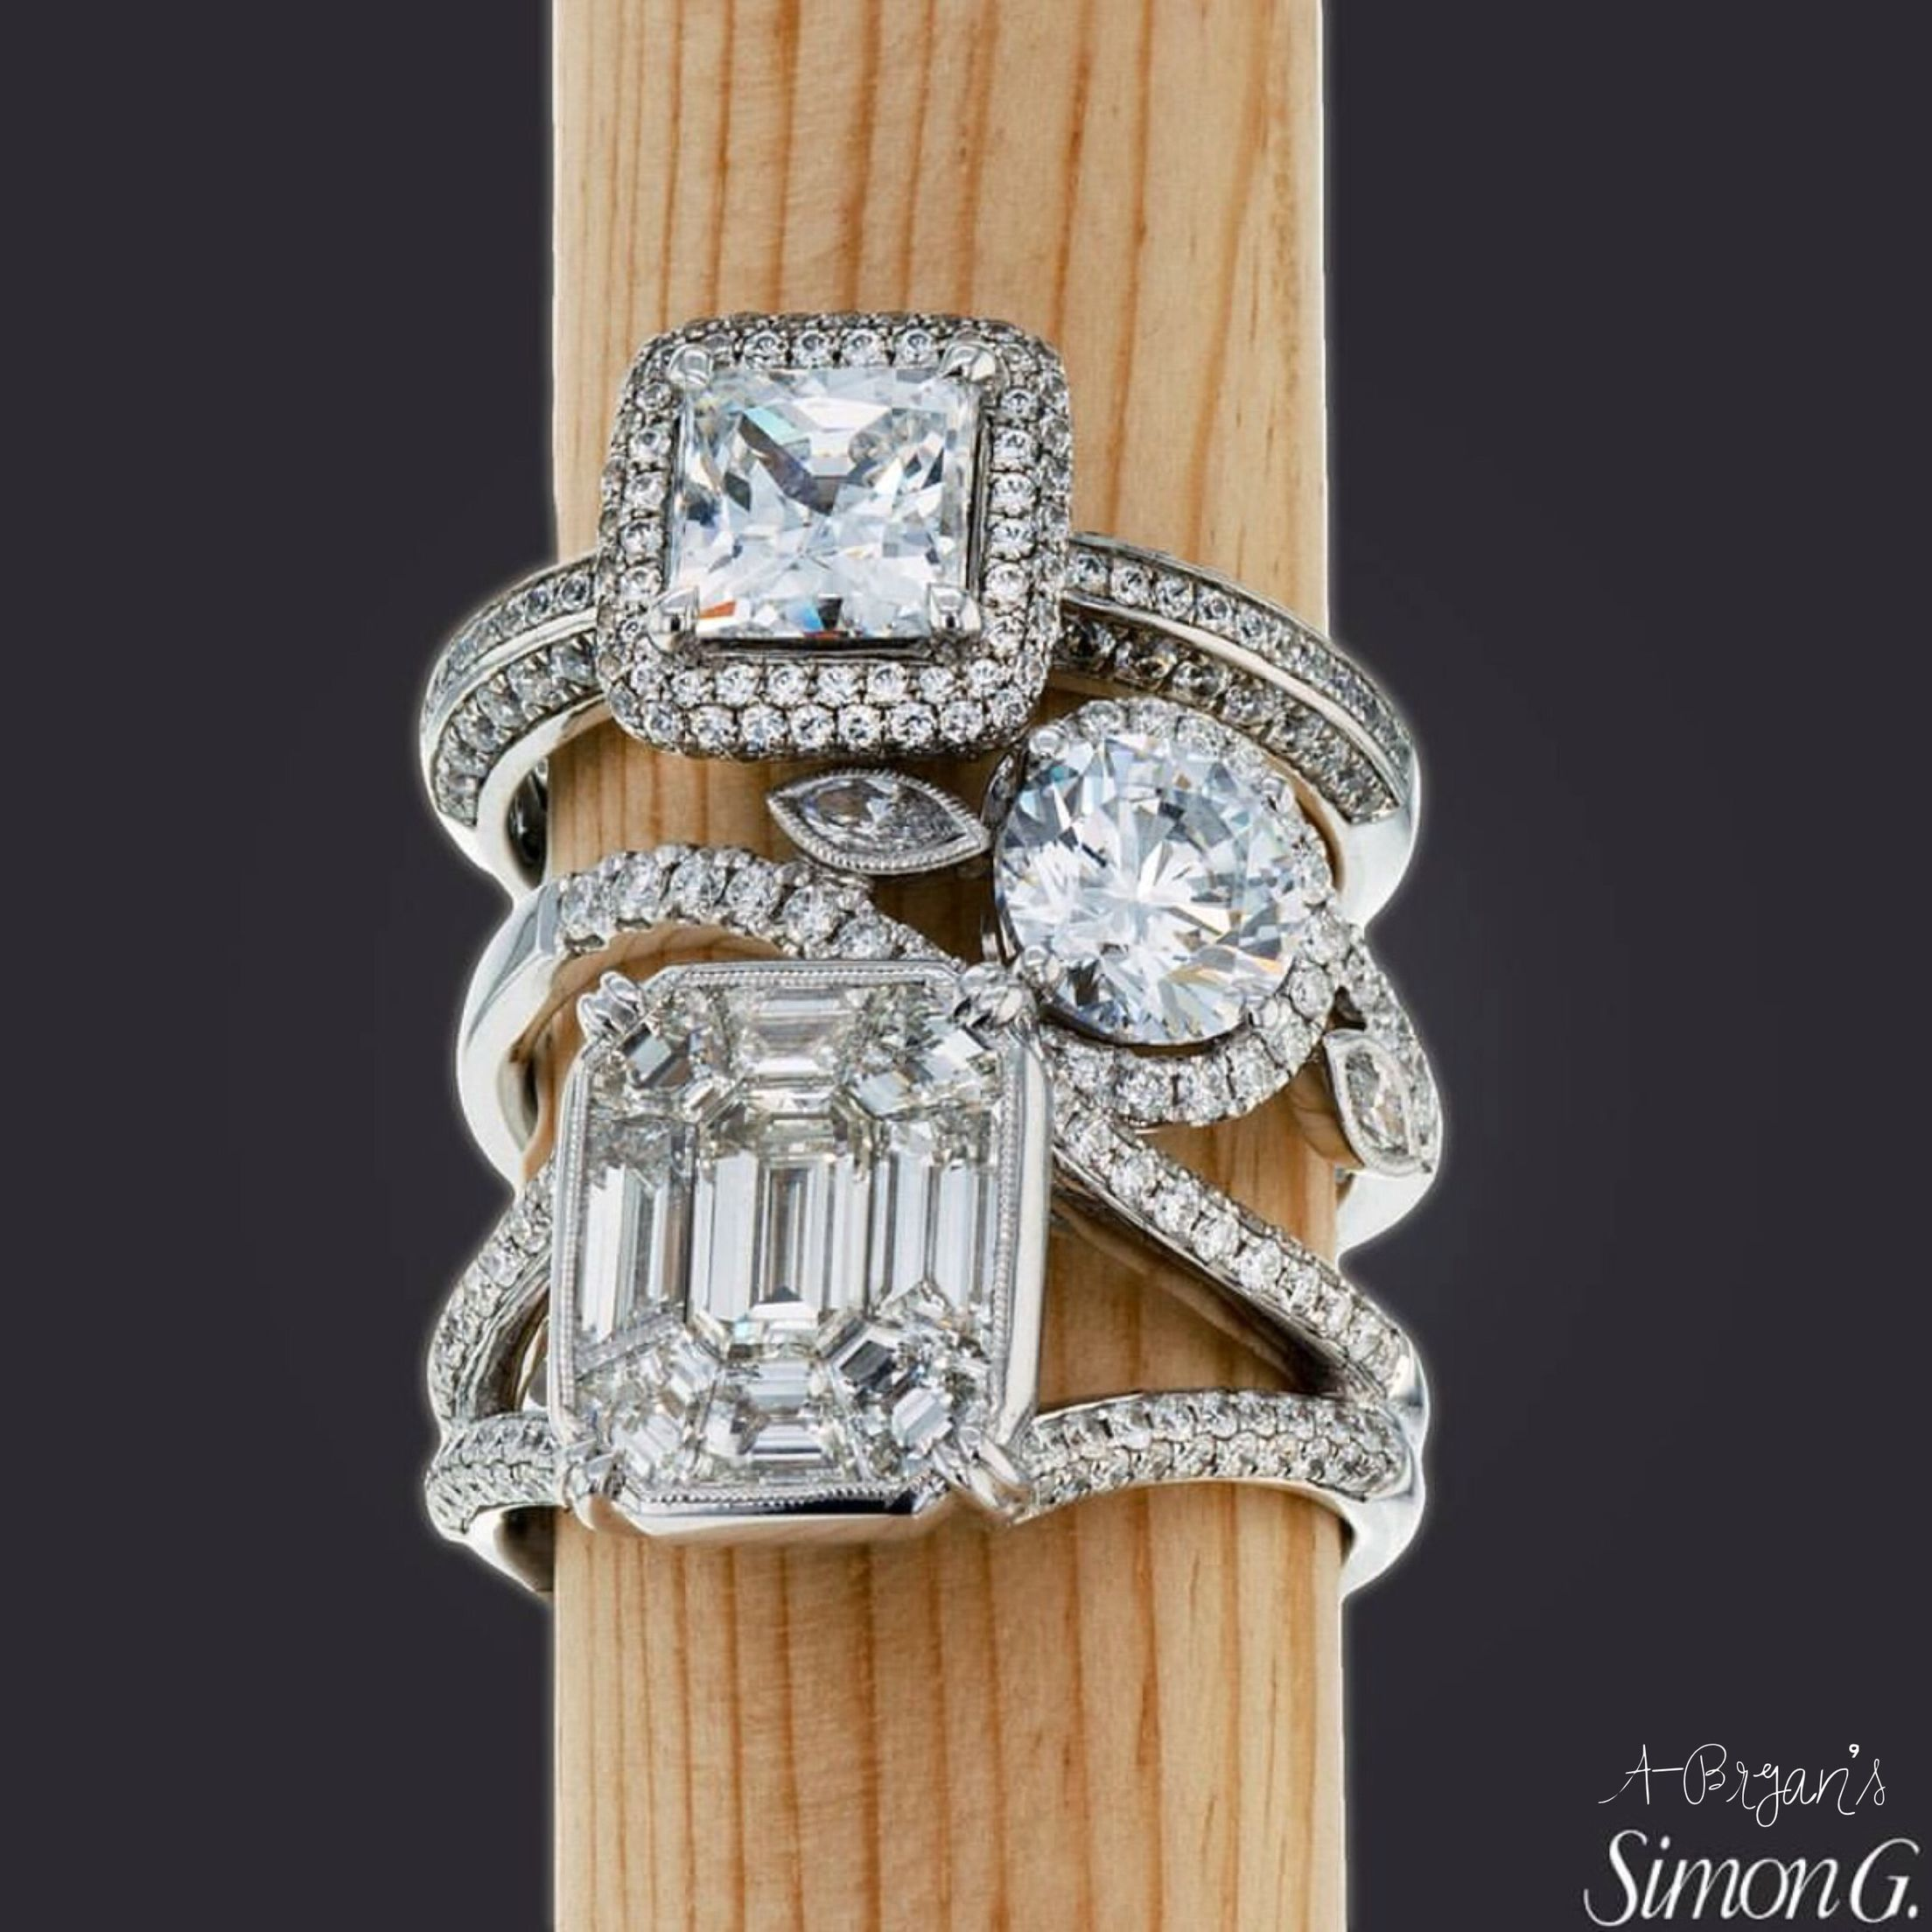 gold the shop jewelry houston woodlands product category engagement rings simon fine white designers shannon ring g